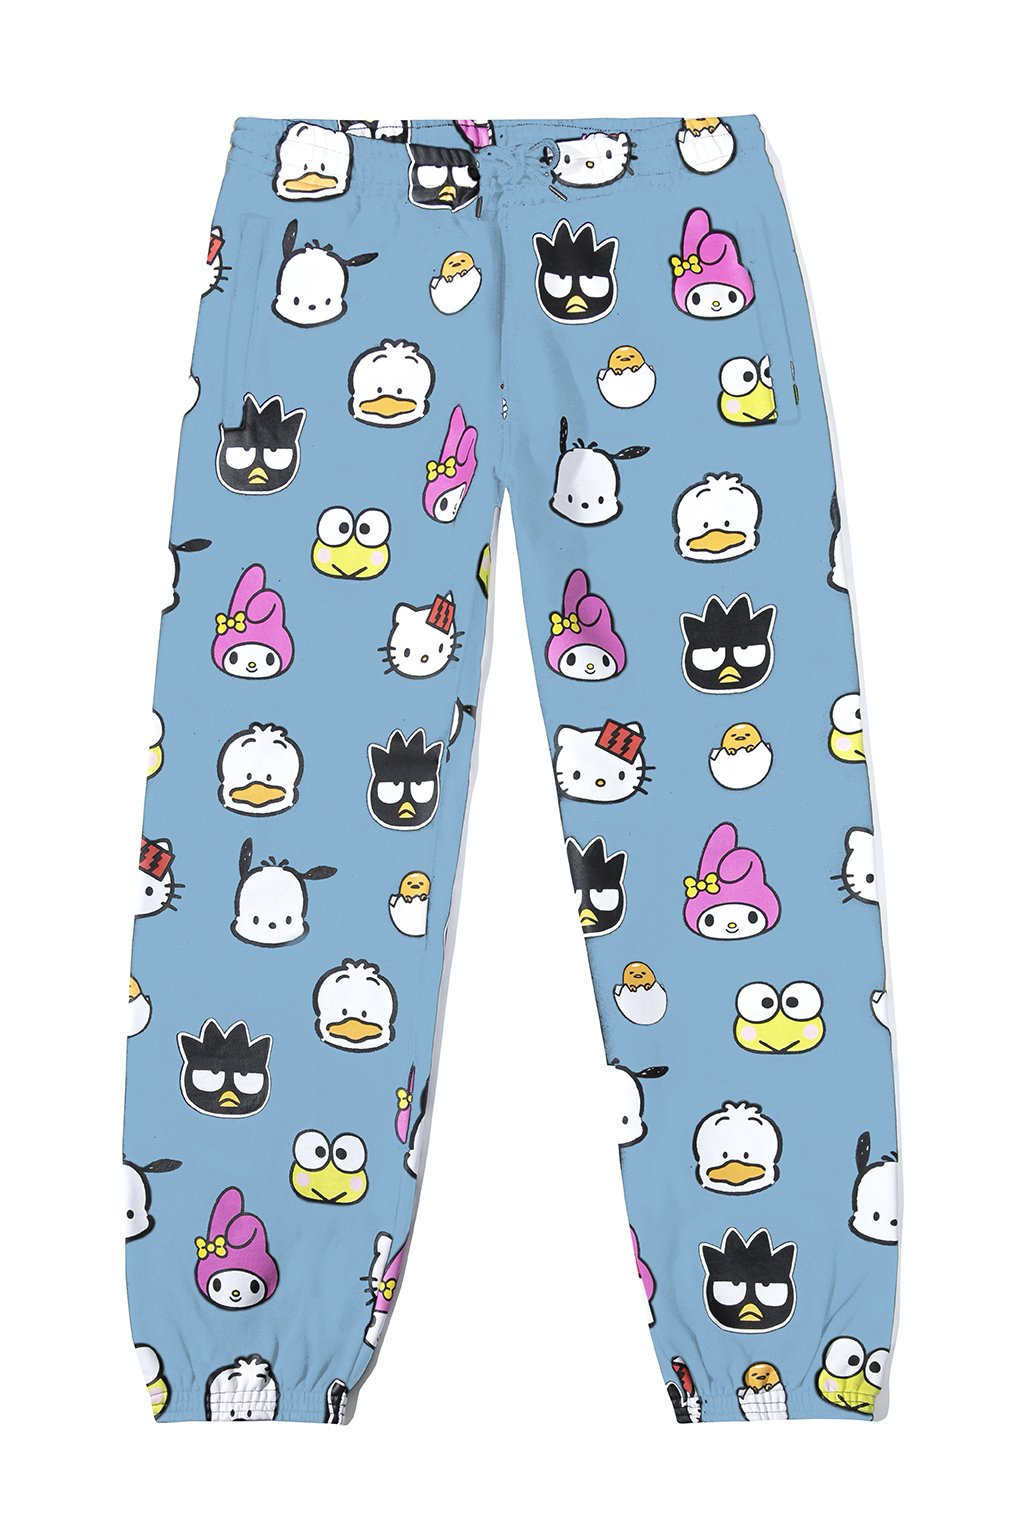 The Hundreds x Sanrio Heads Sweatpants xld